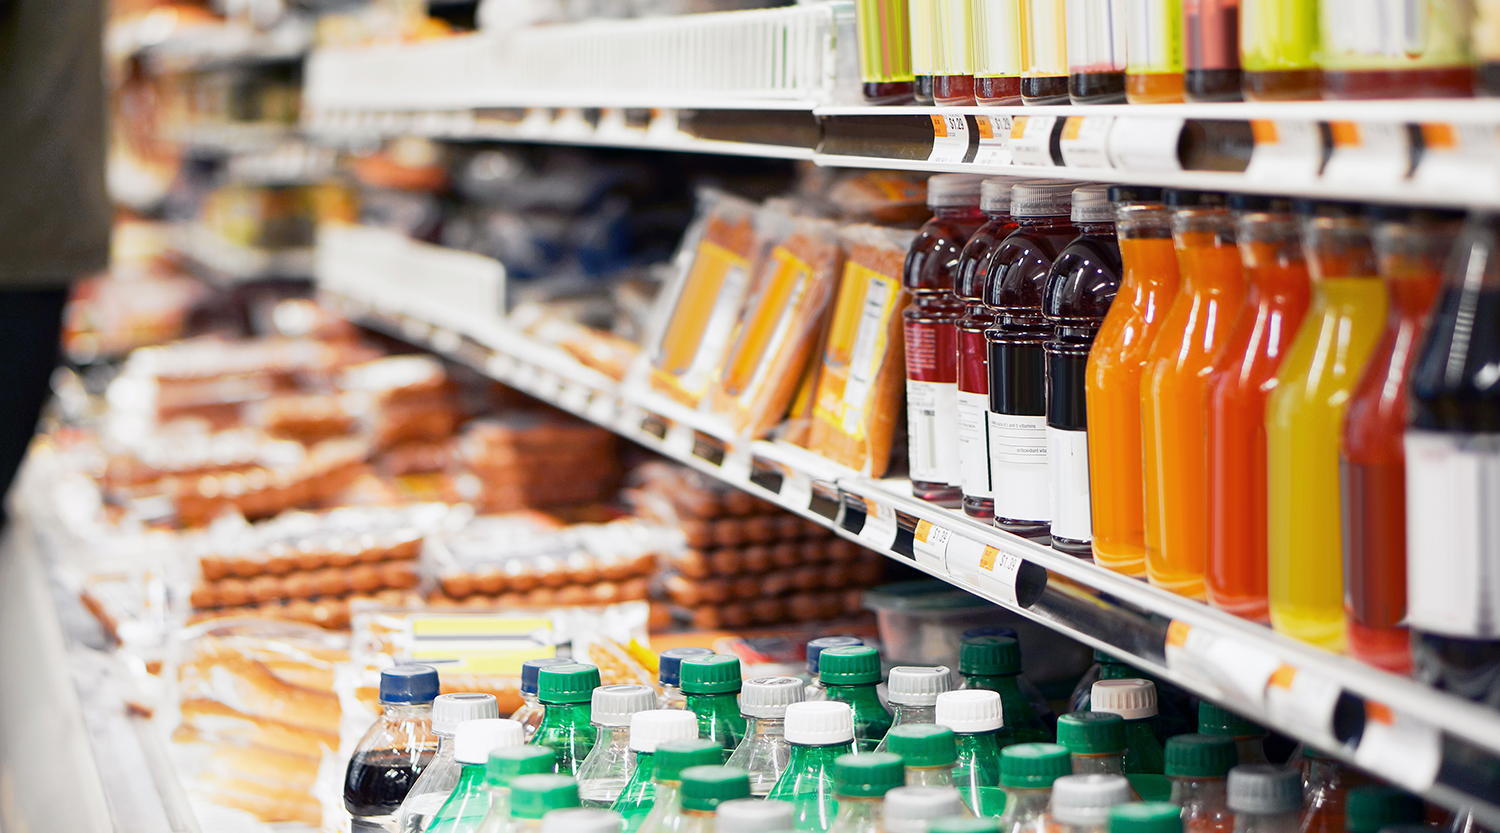 Assortment classes enhance efficiency in planning and localizing store level assortments